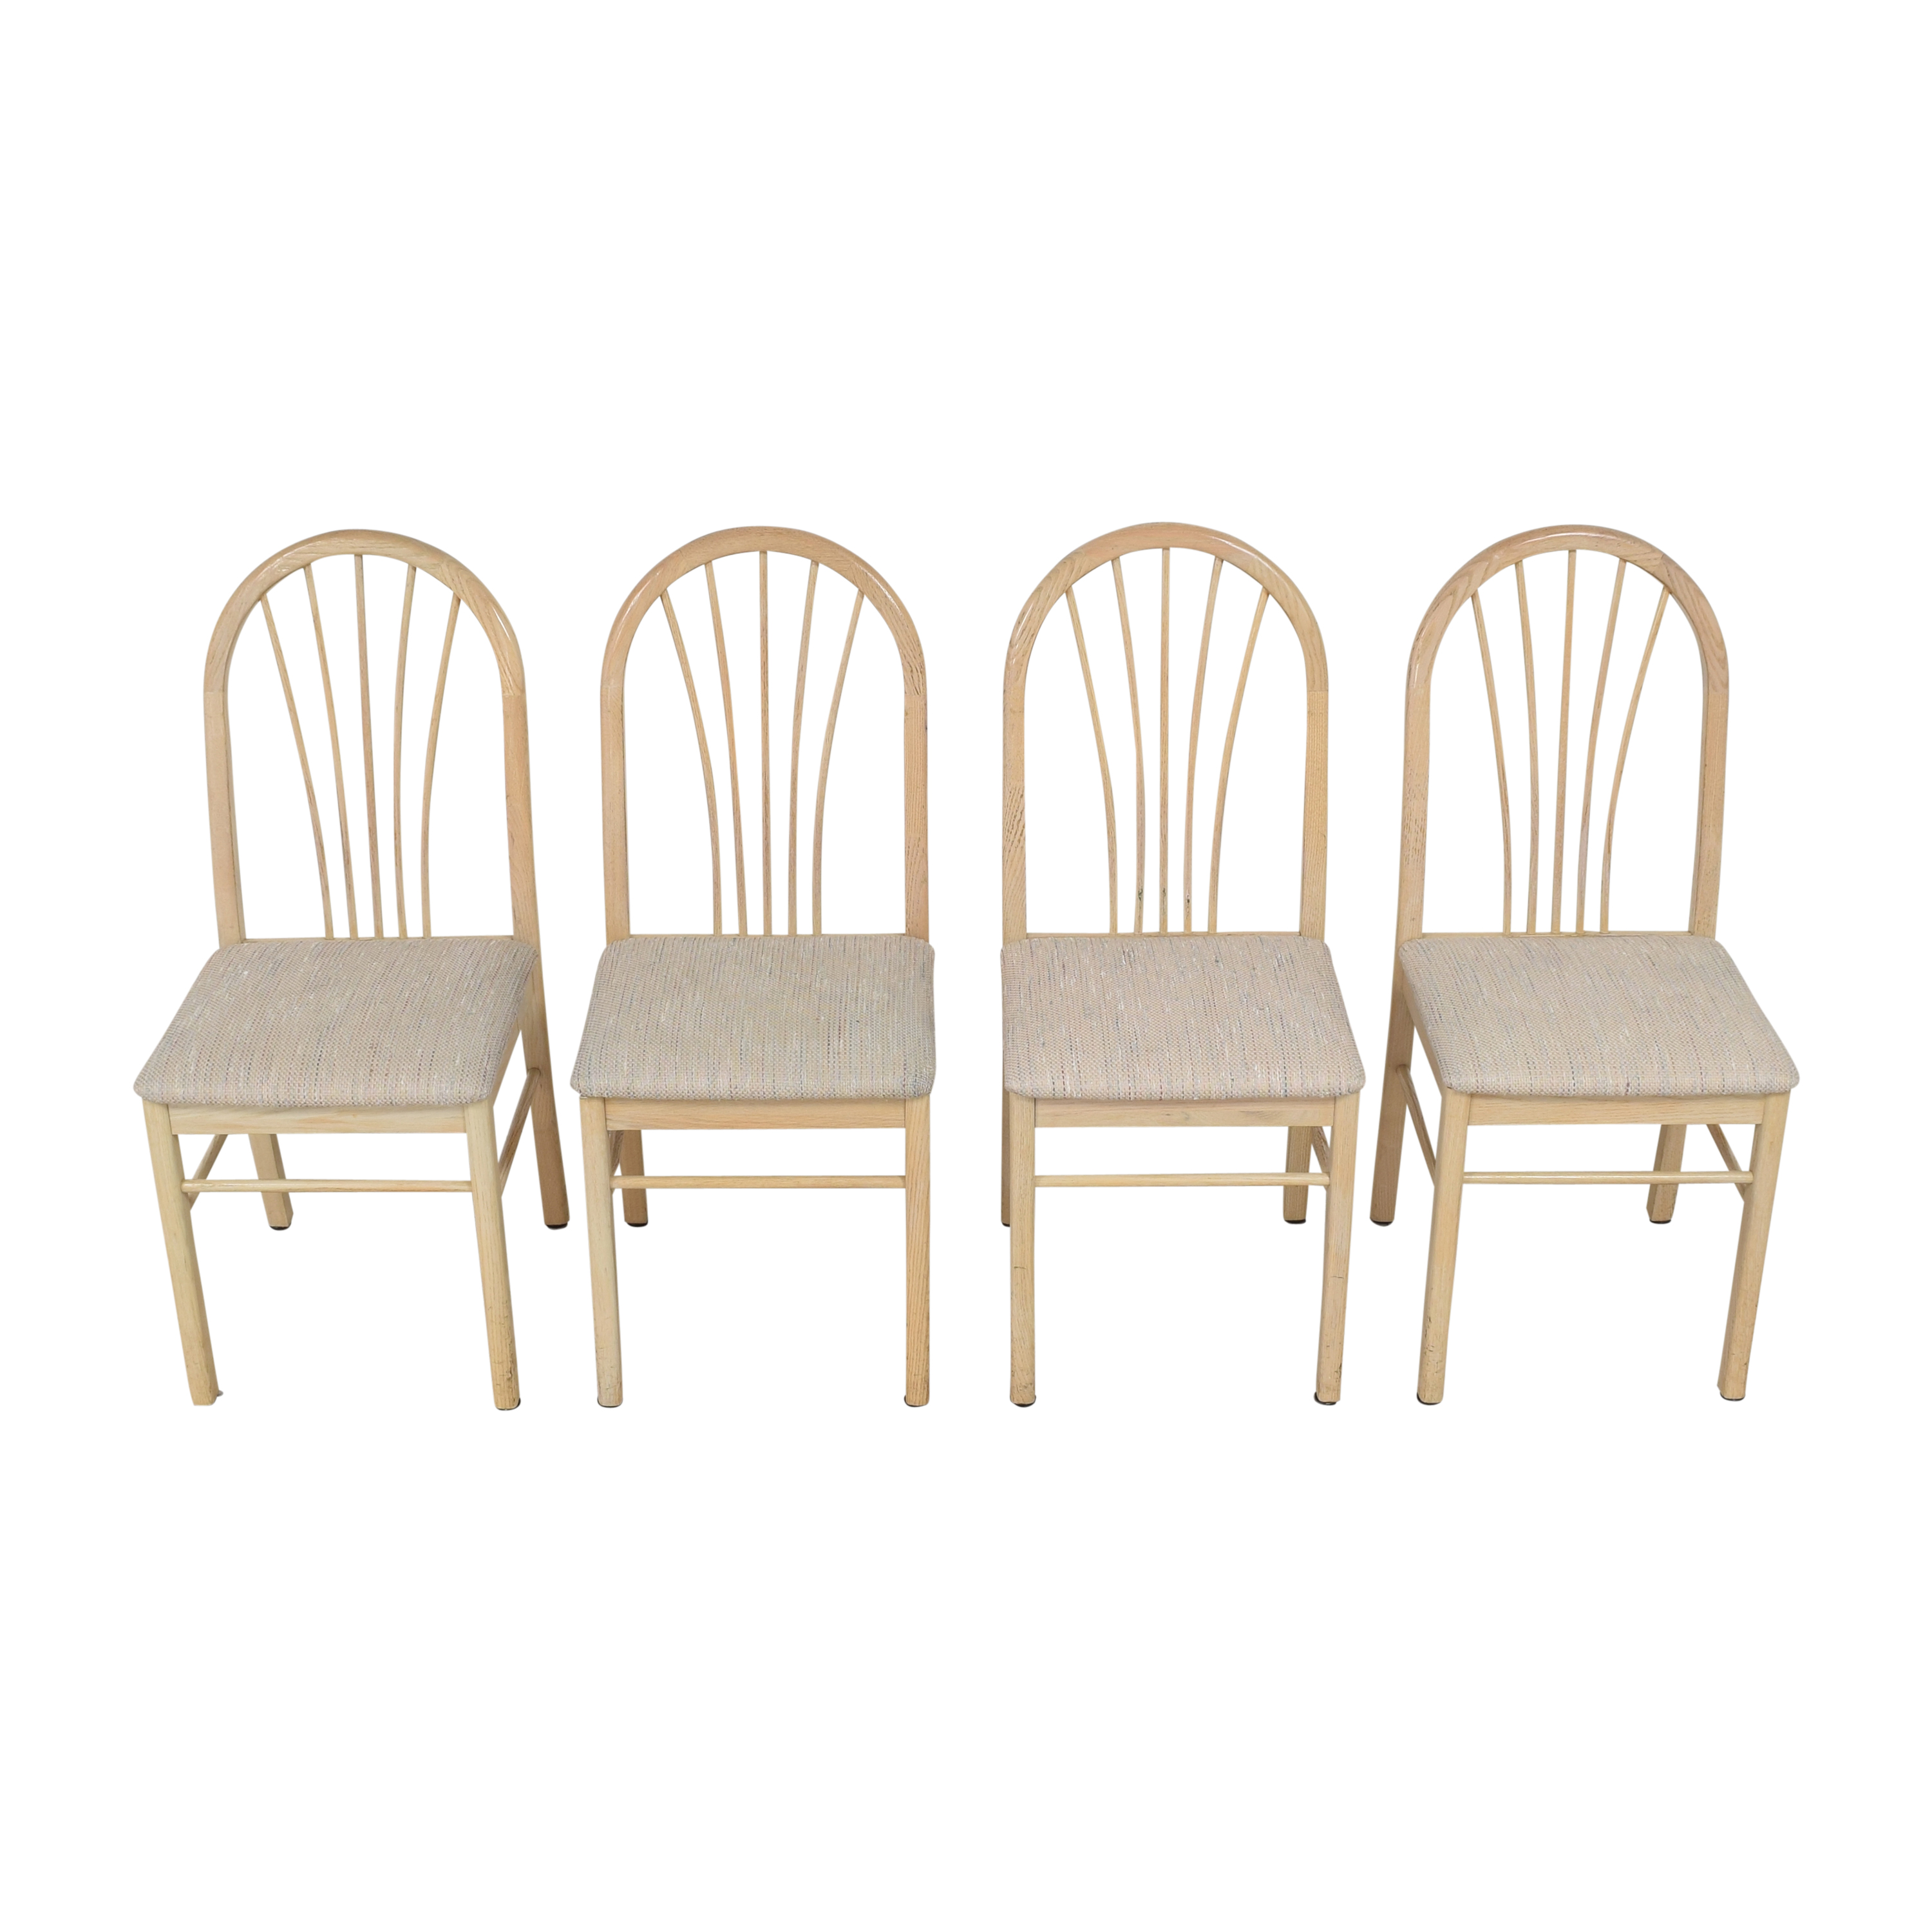 Dinaire Dinaire Upholstered Seat Dining Chairs nyc